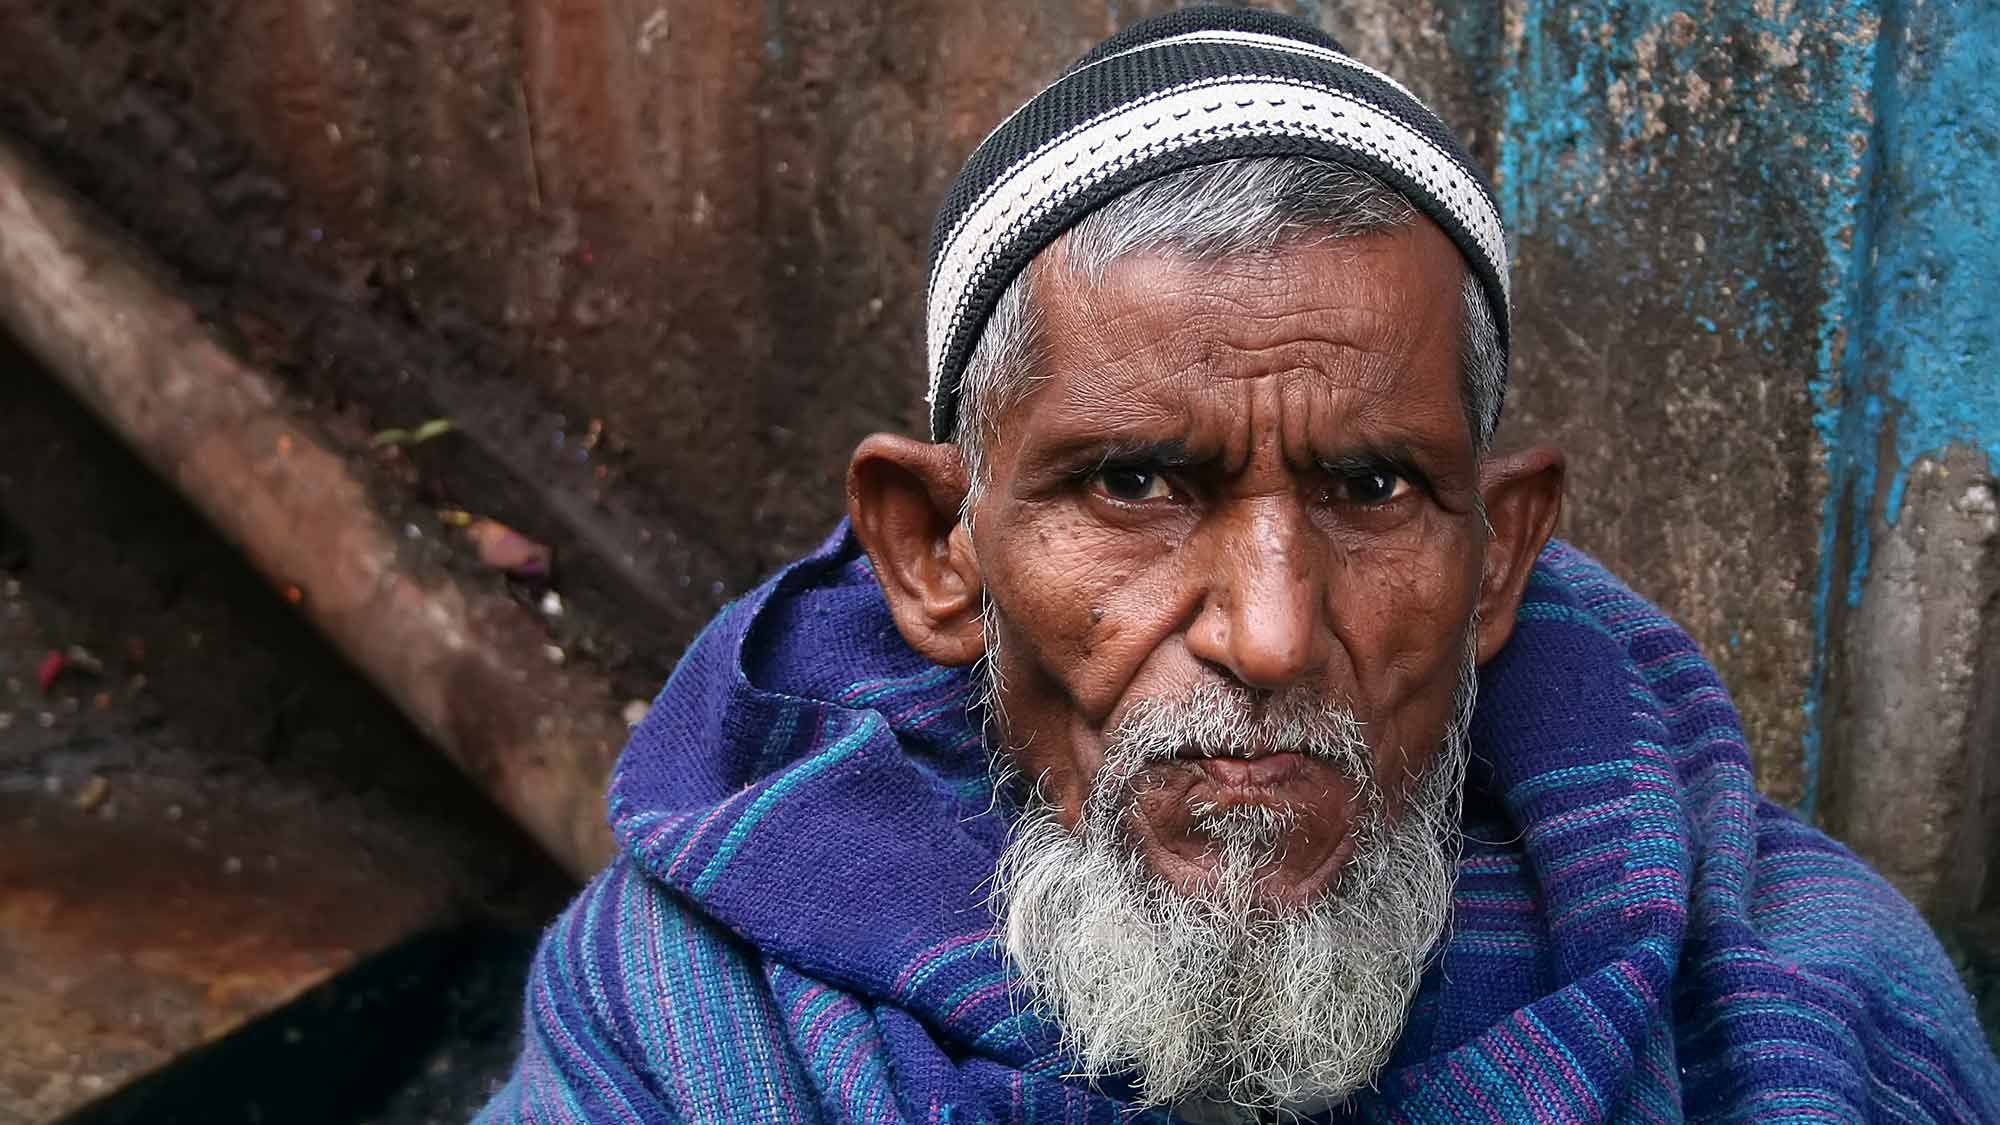 portrait-old-man-darjeeling-india-featured-1